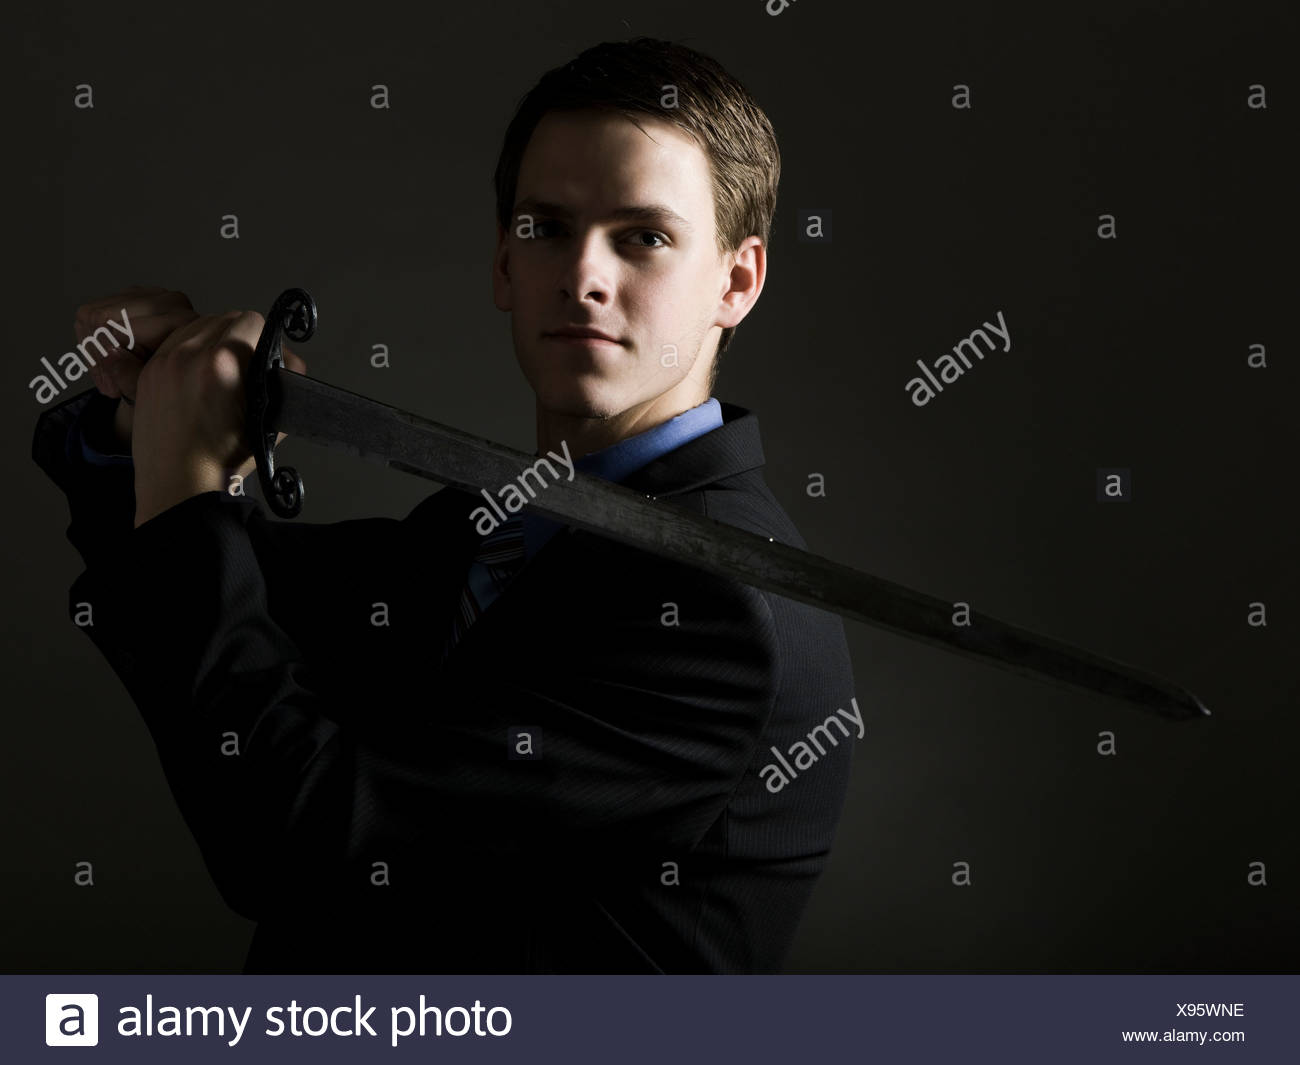 businessman holding a sword - Stock Image